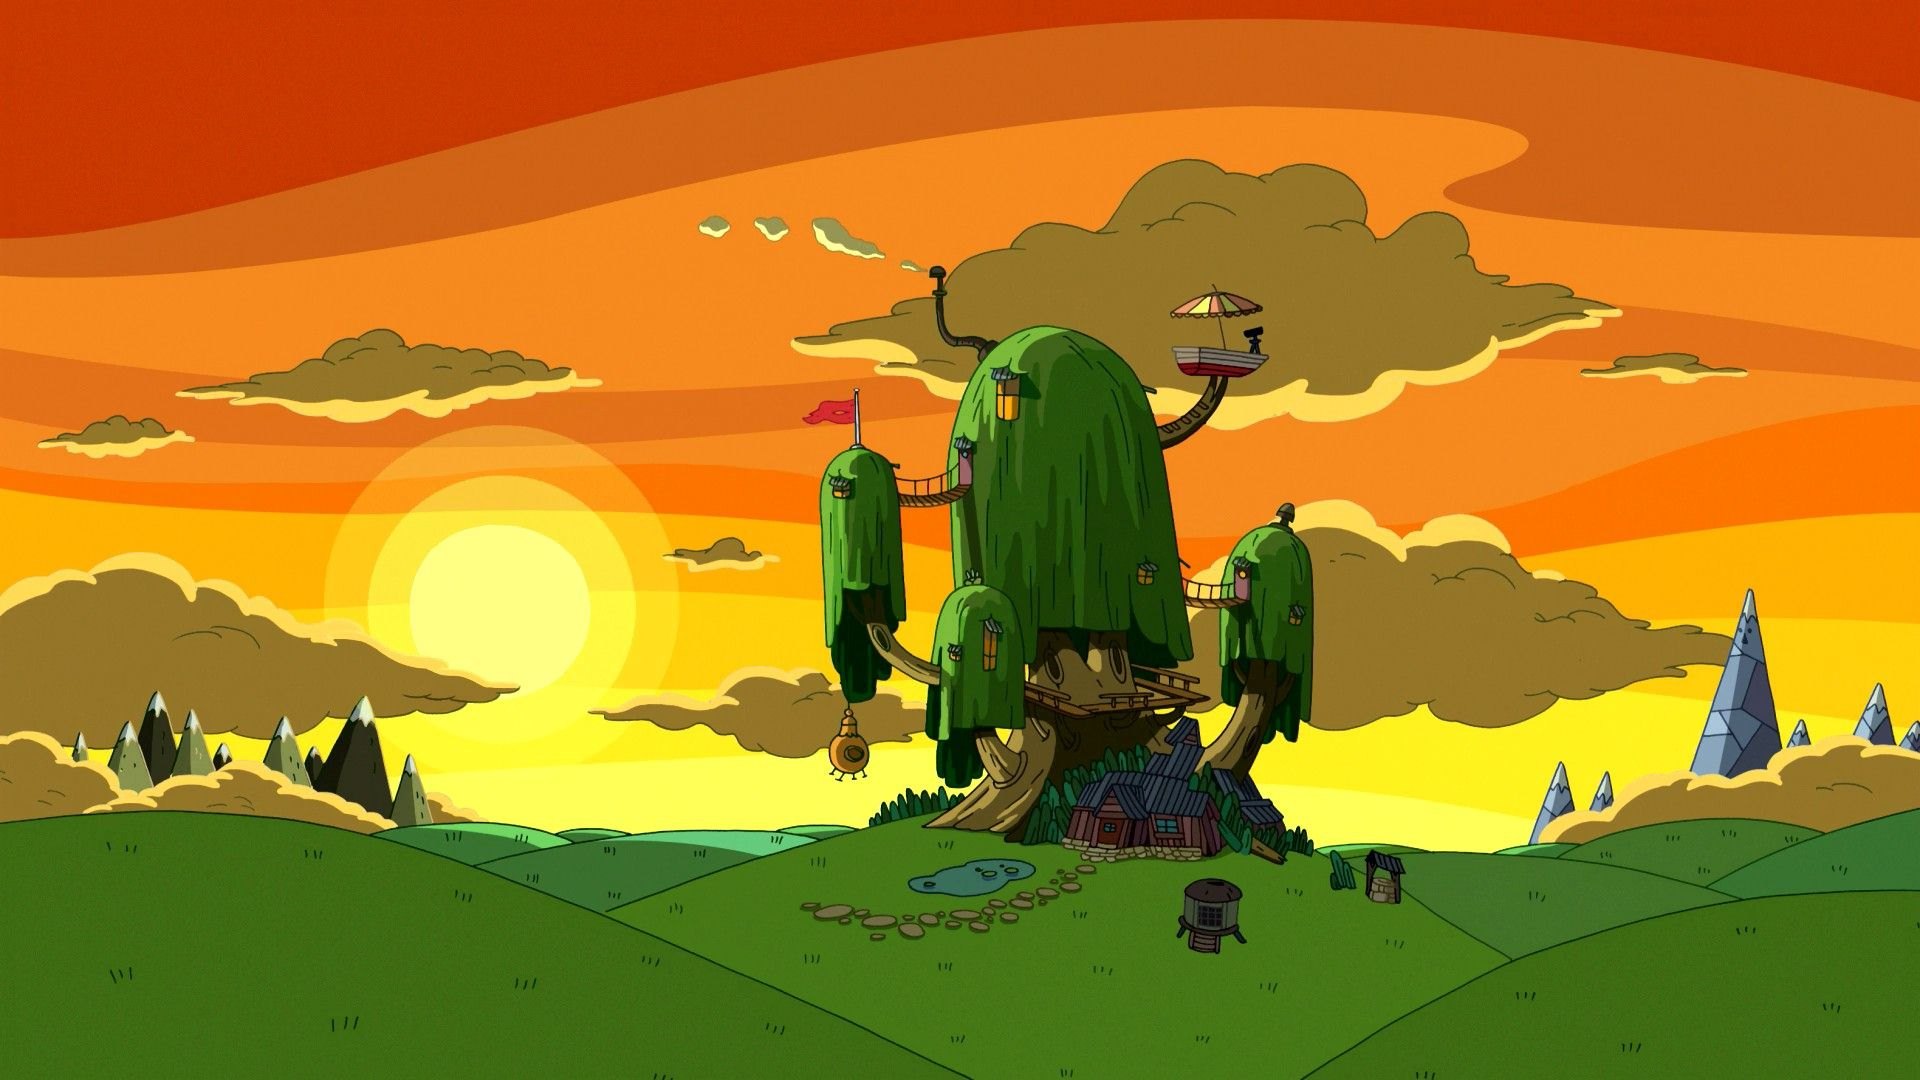 Wallpaper Adventure Time (55 Wallpapers) - HD Wallpapers